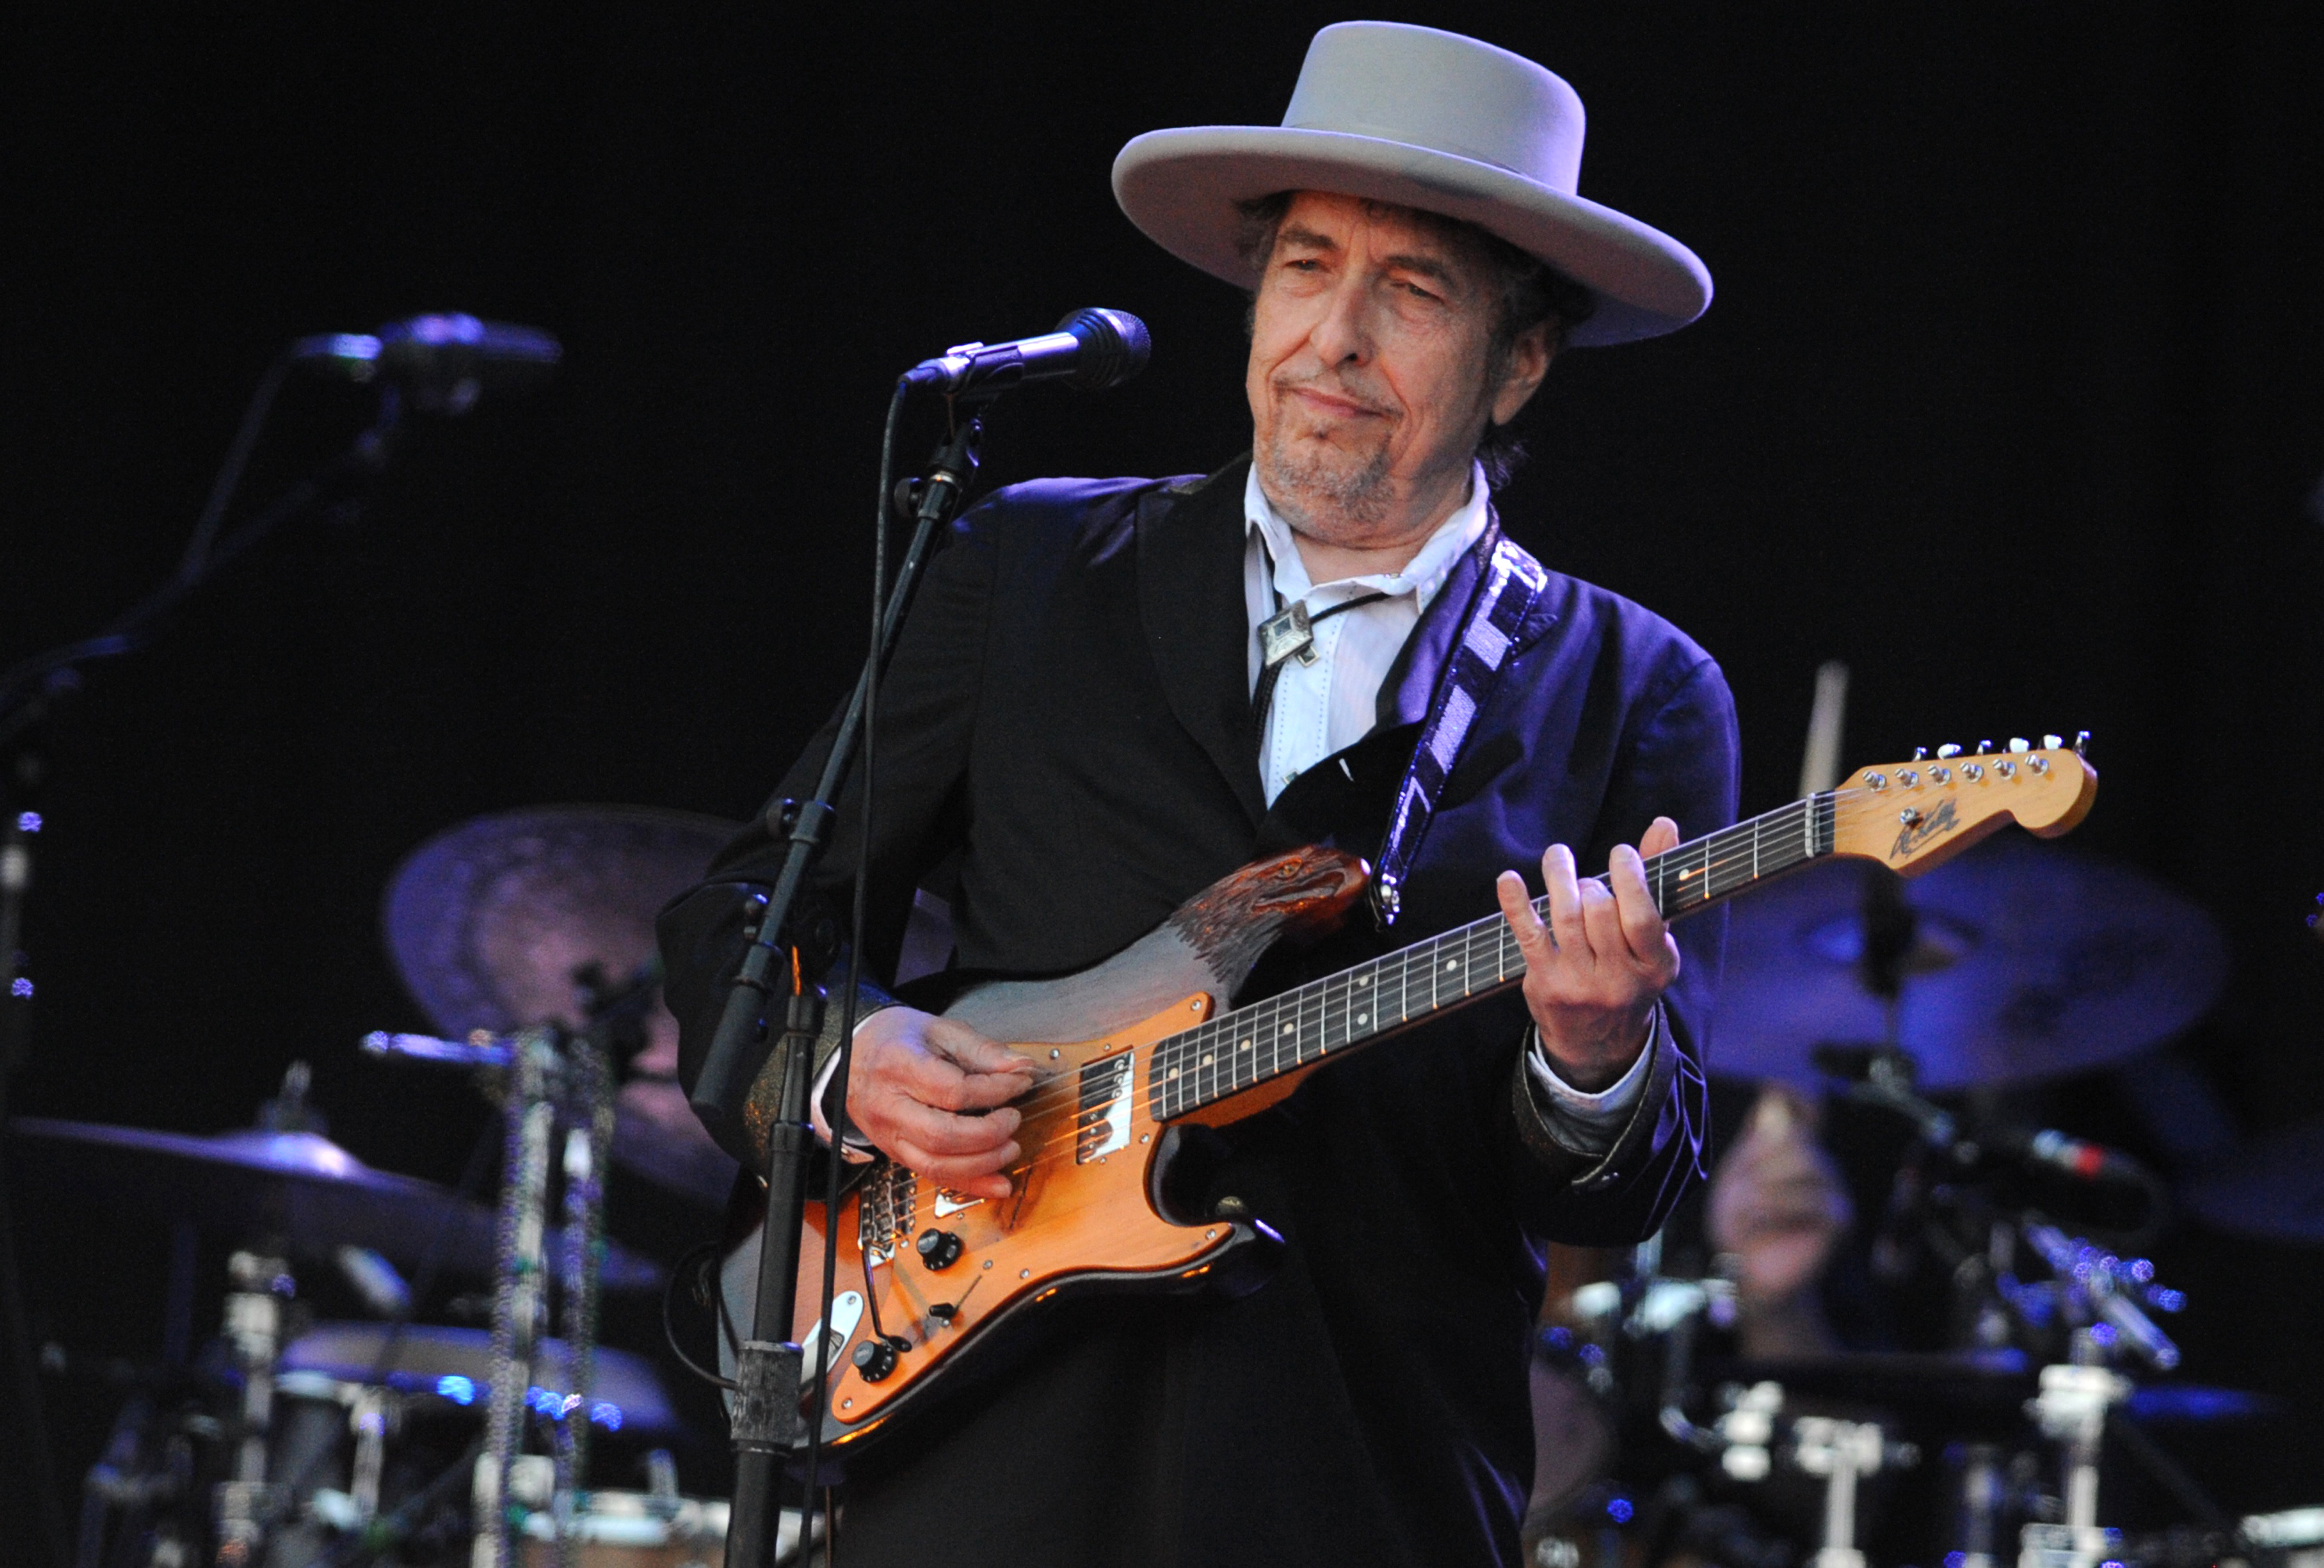 Bob Dylan: The Government's Not Going to Create Jobs. Billionaires Can